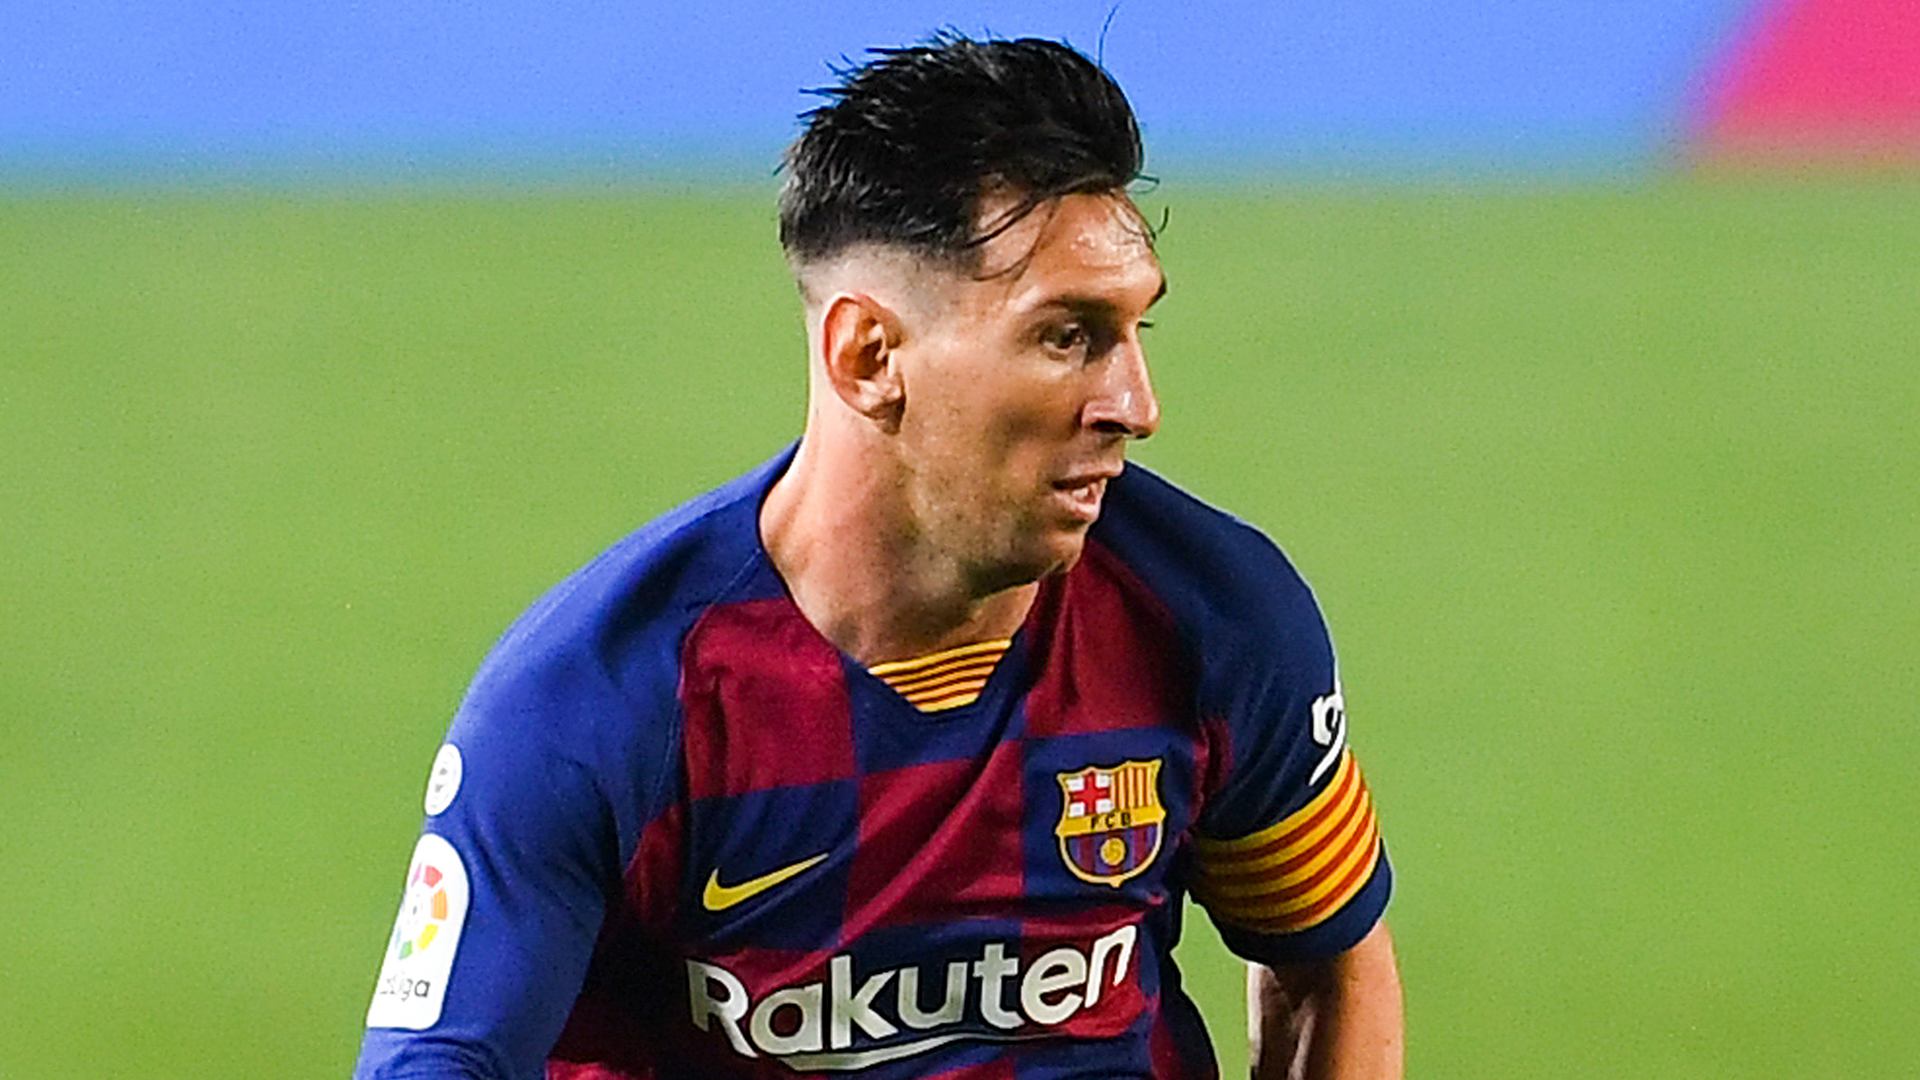 'Barcelona will continue to win without Messi' - Six-time Ballon d'Or winner will leave 'sooner or later', says Luis Enrique